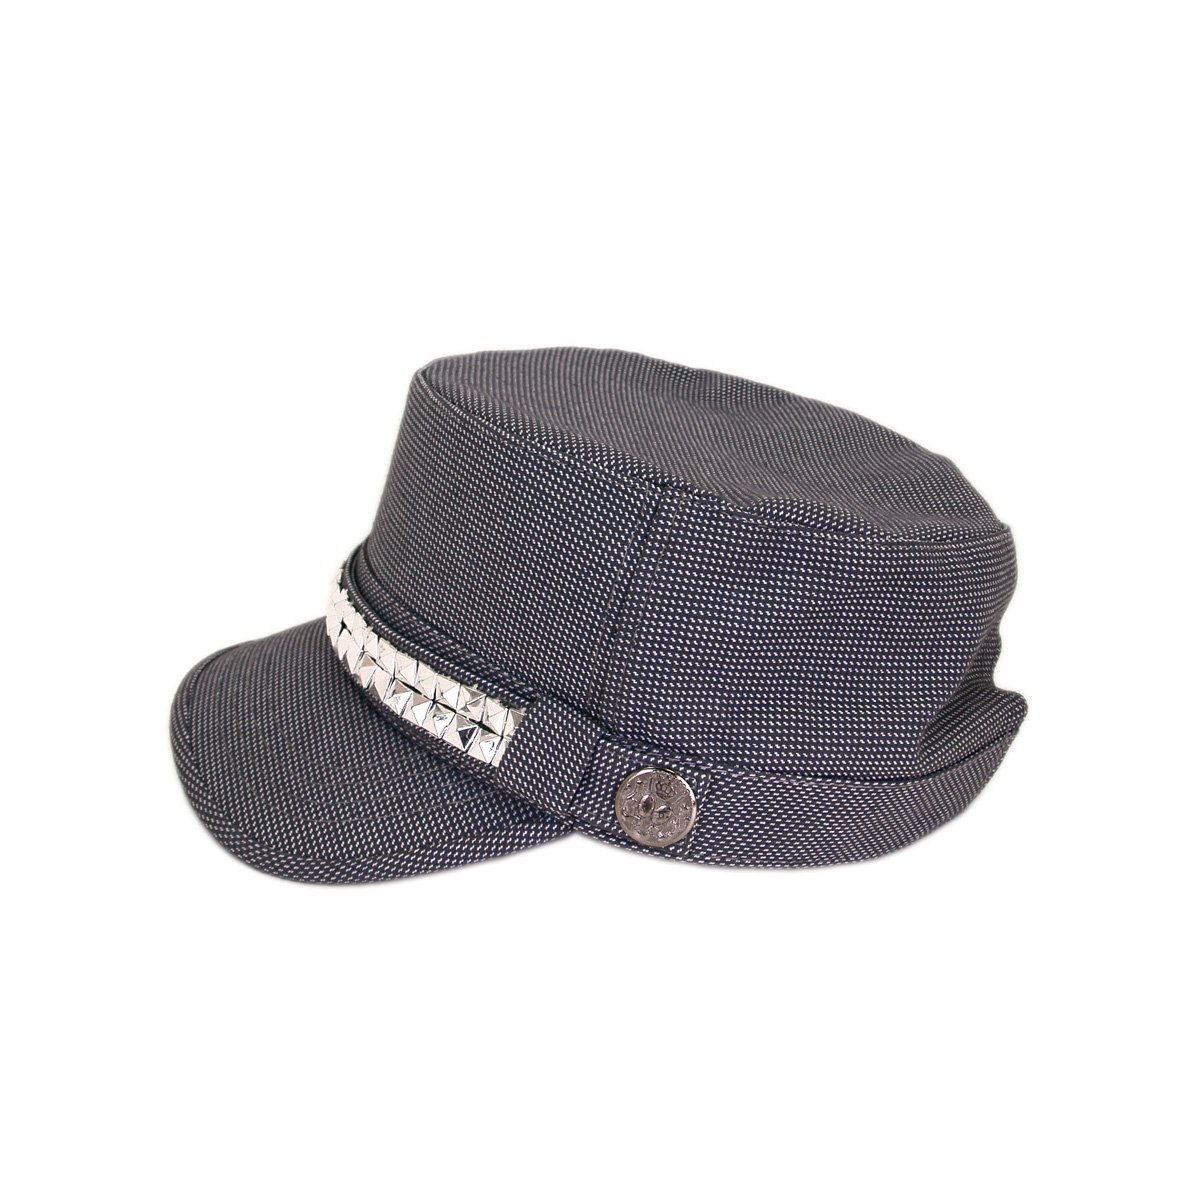 050e91b6aee Adjustable Cotton Military Style Studded Bling Army Cap